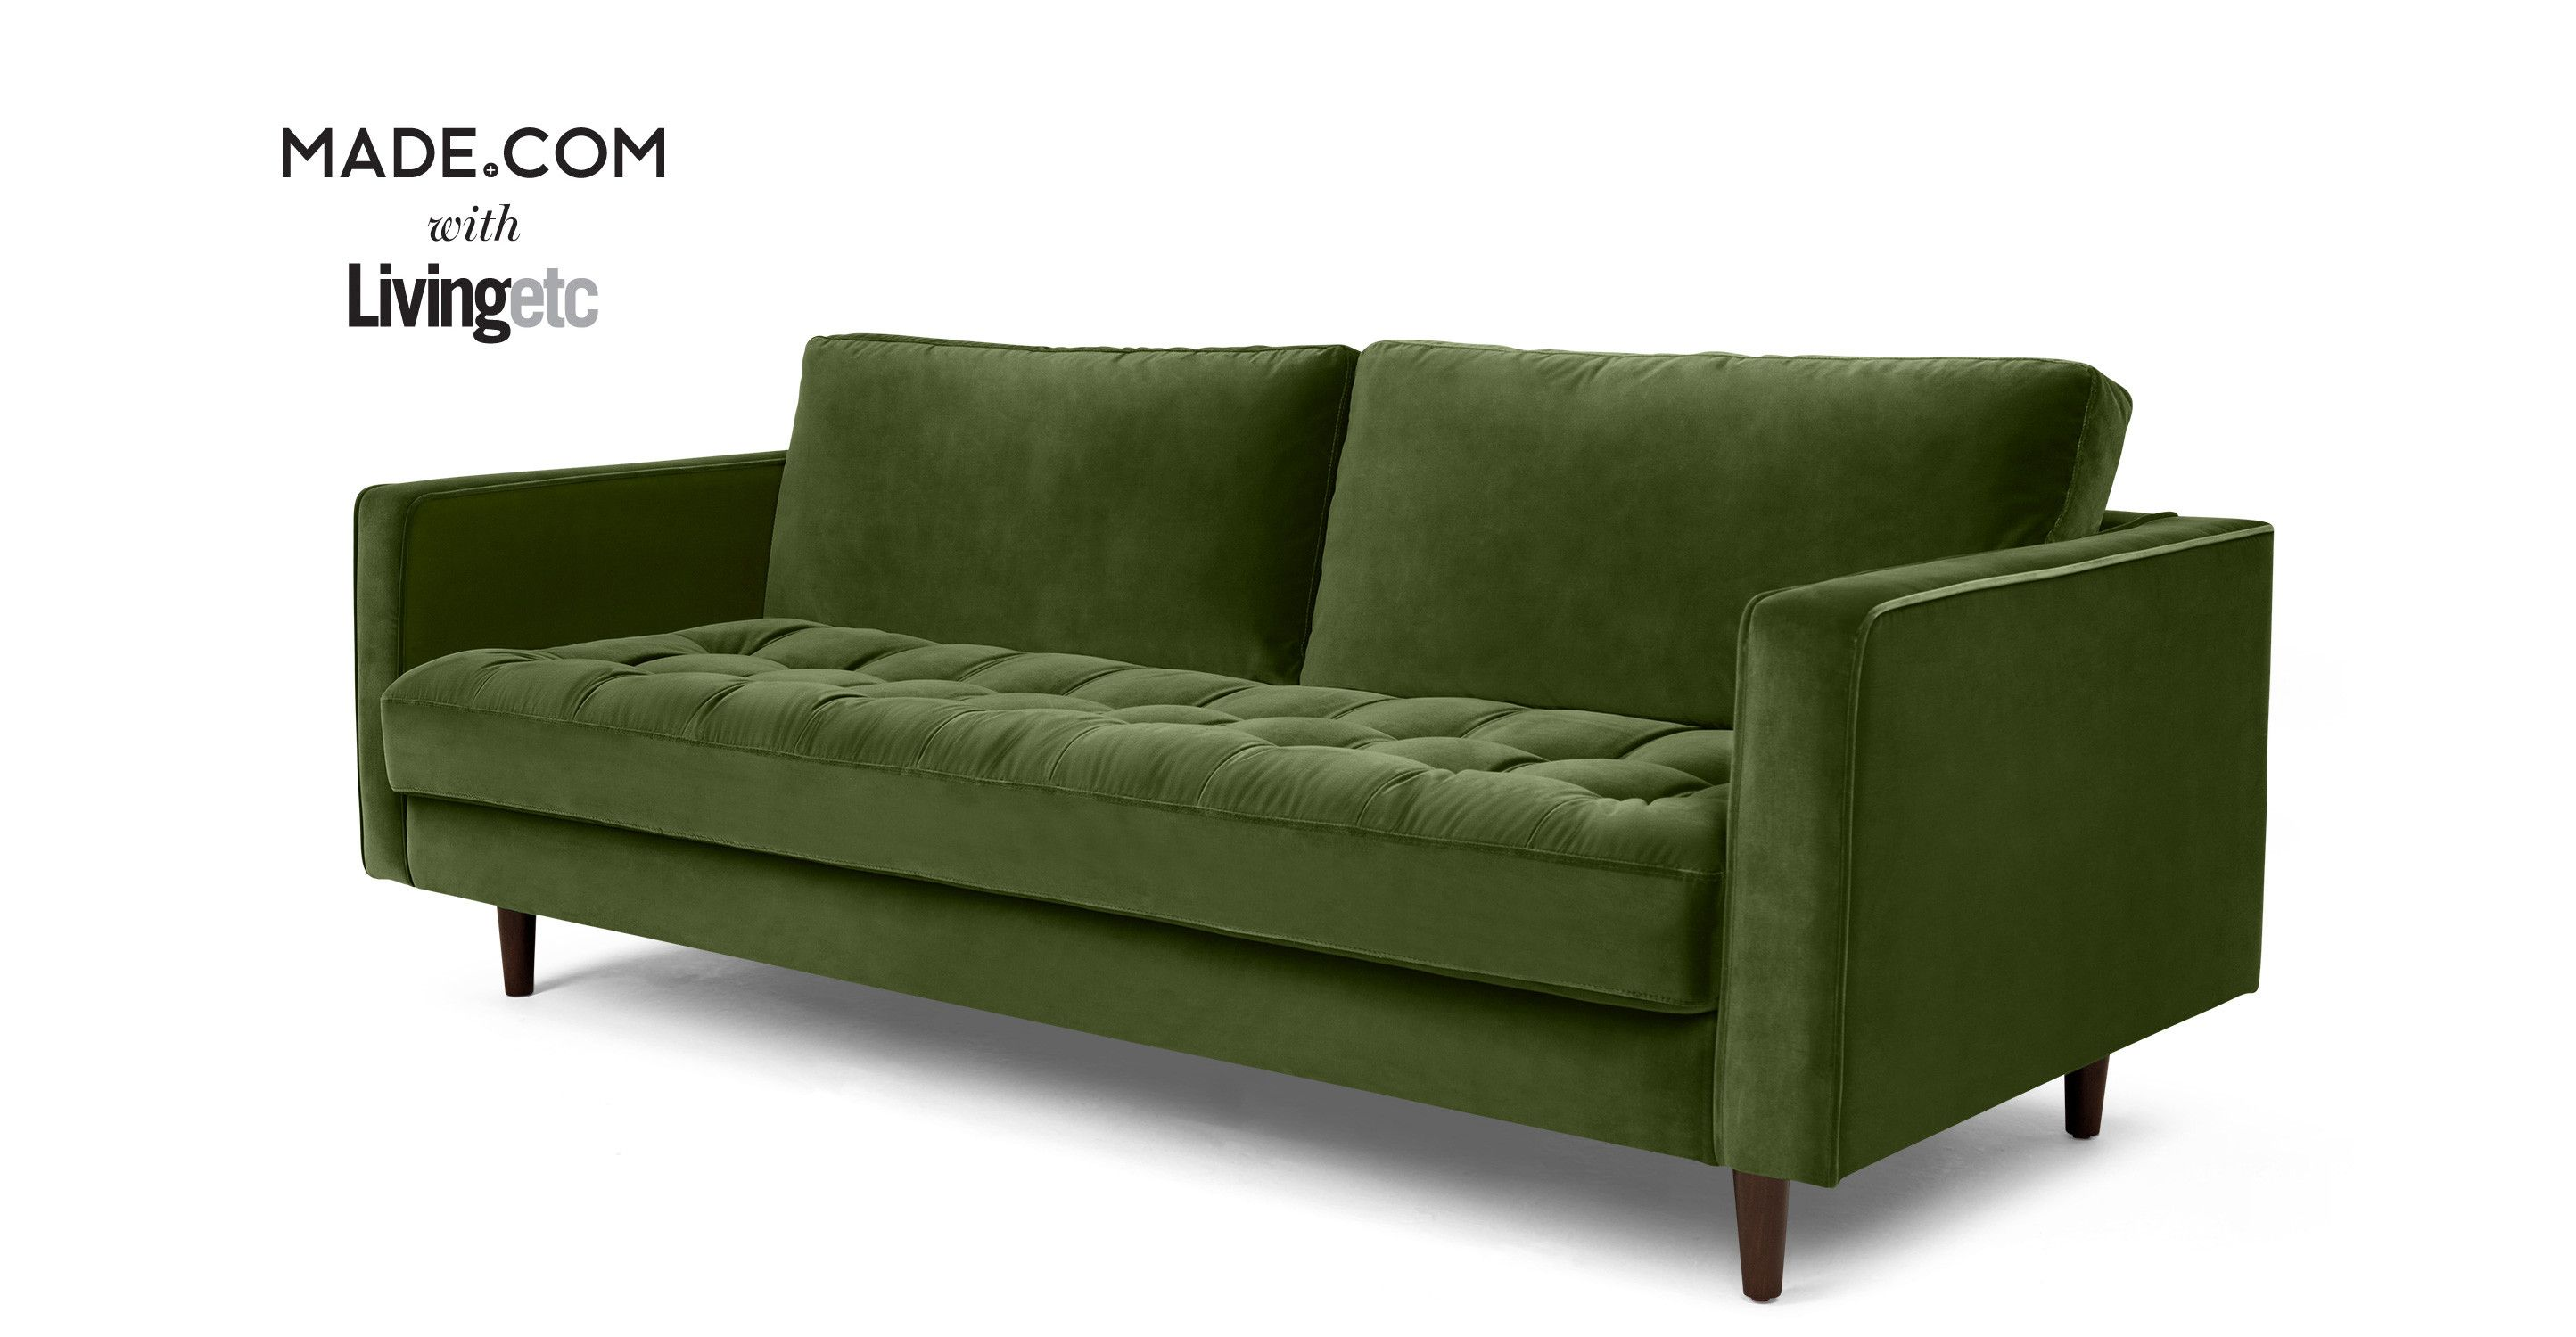 Made Sofa Velvet Made Grass Cotton Velvet Sofa Living Dining Green